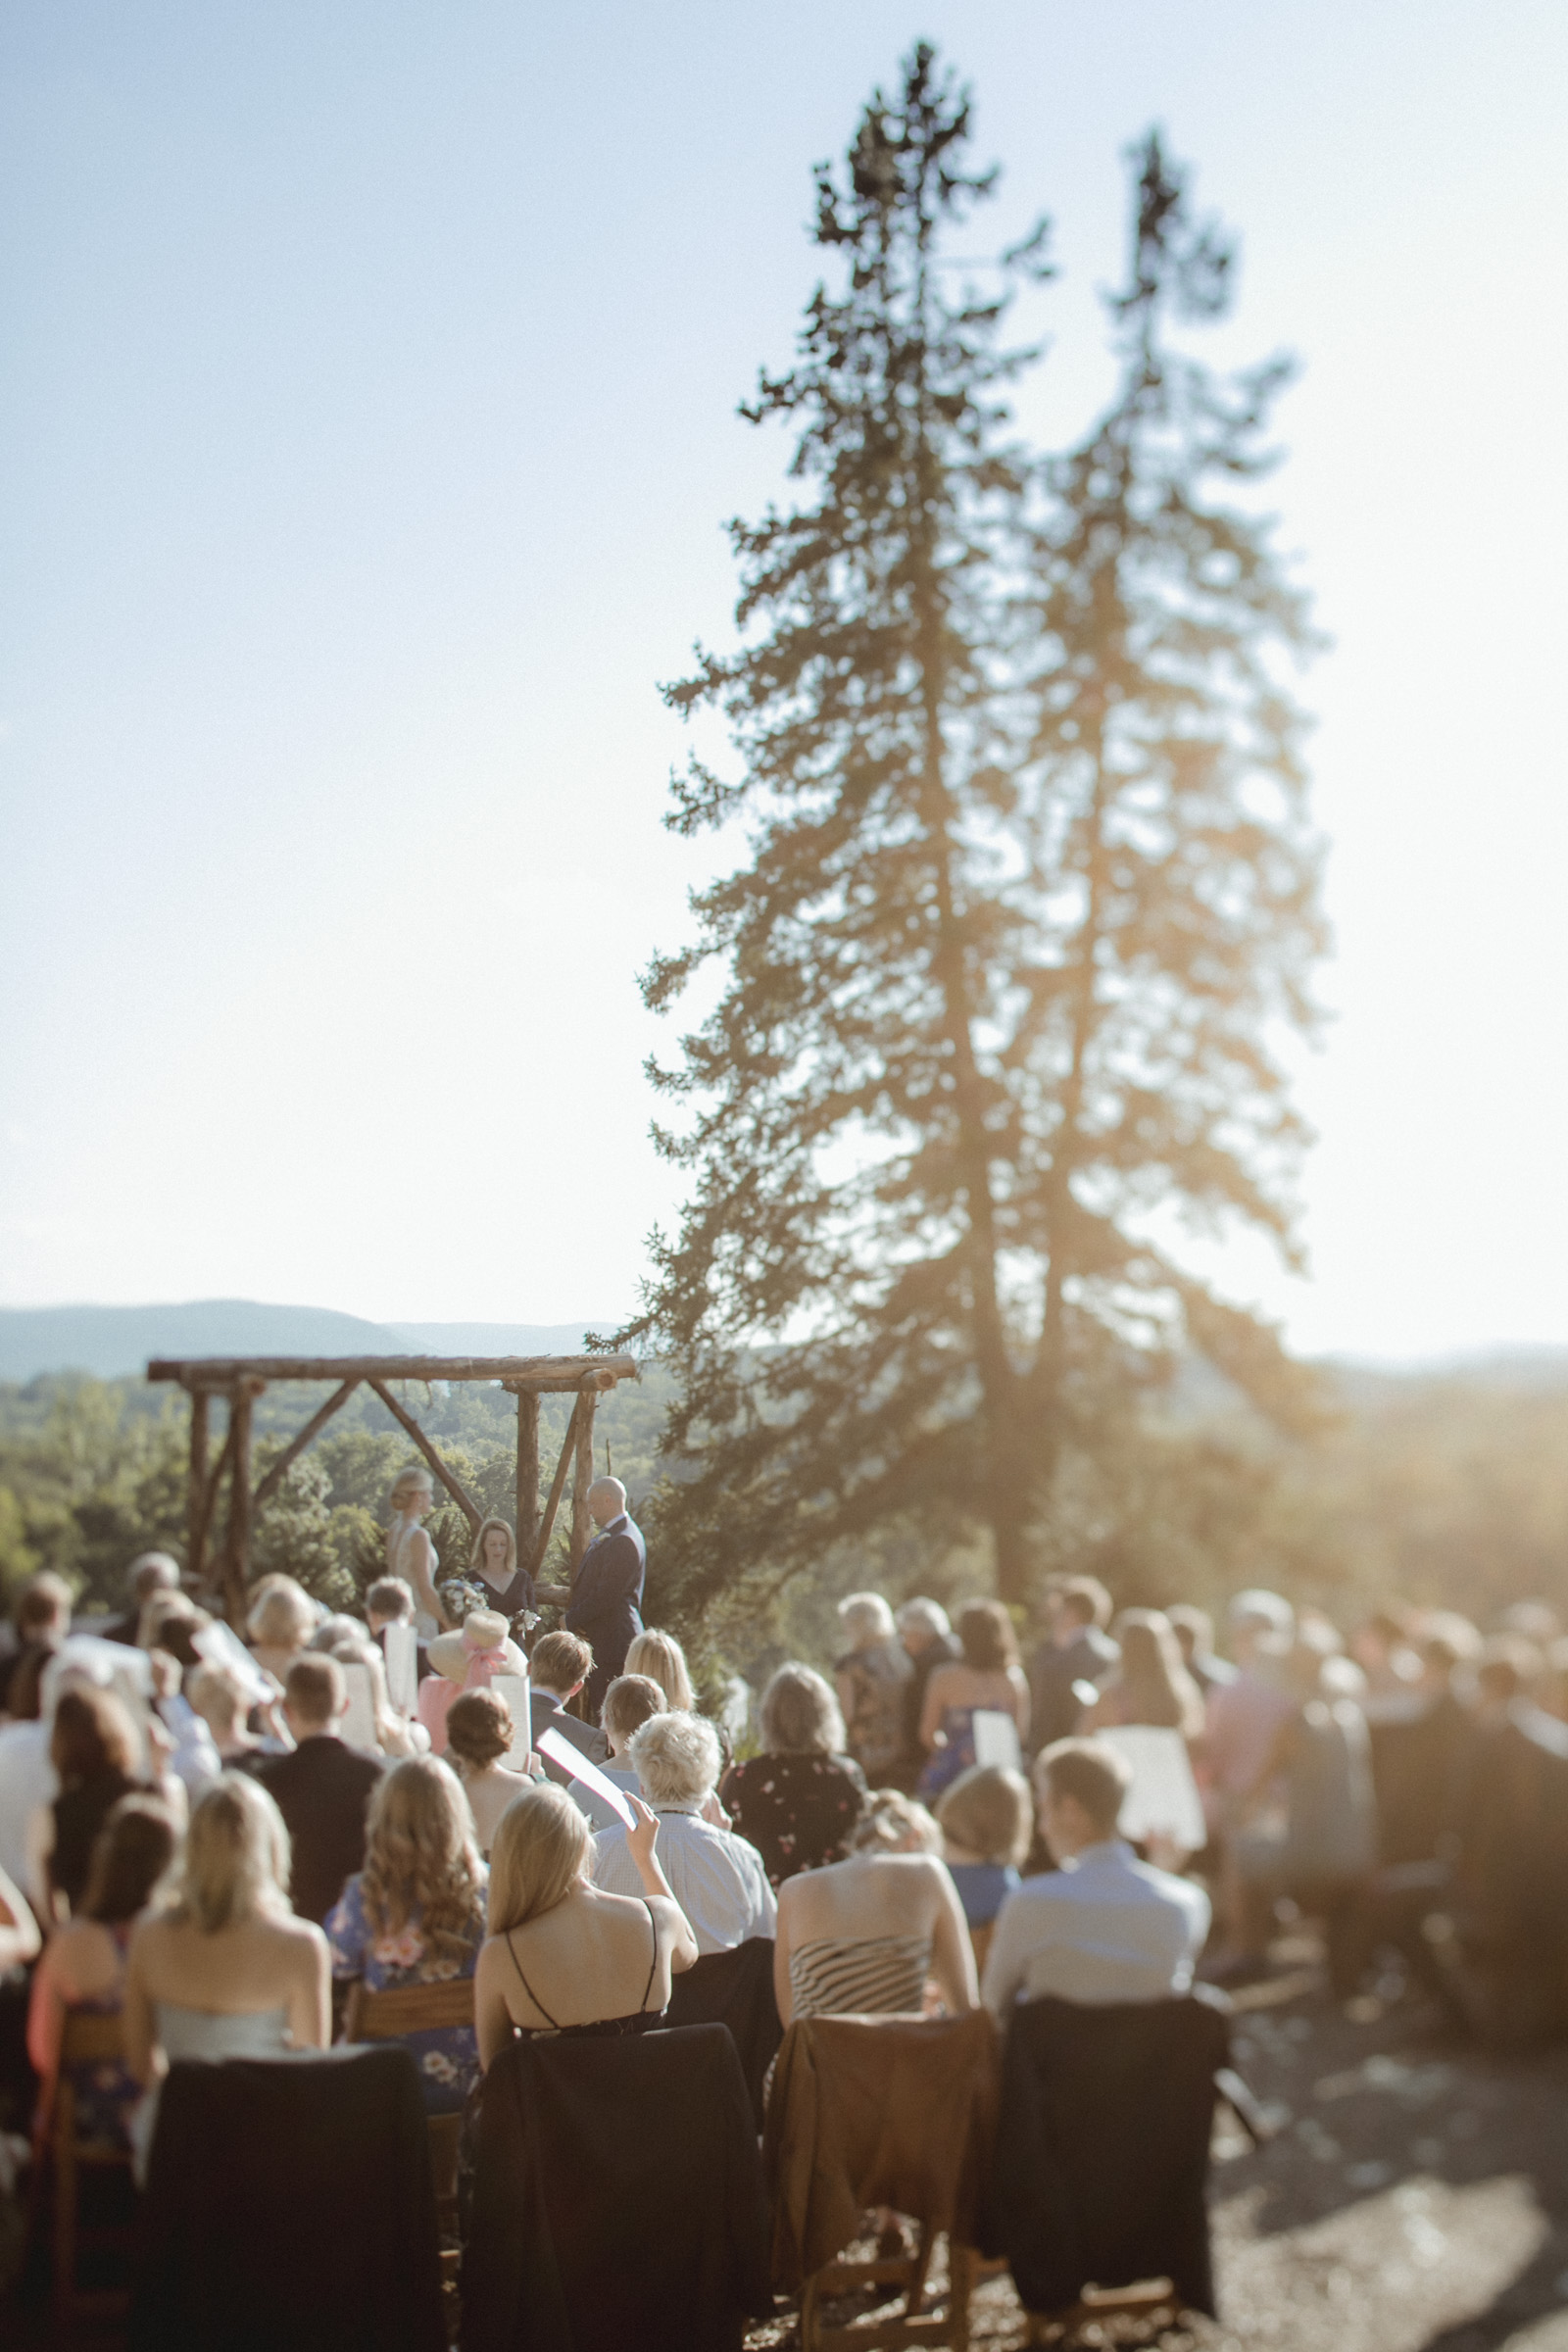 Amy Sims Photography | Ceremony at Emmerich Tree Farm on a gorgeous summer day | tilt-shift photography | Emmerich Tree Farm Wedding | black and white photography | Hudson Valley Wedding Photographer